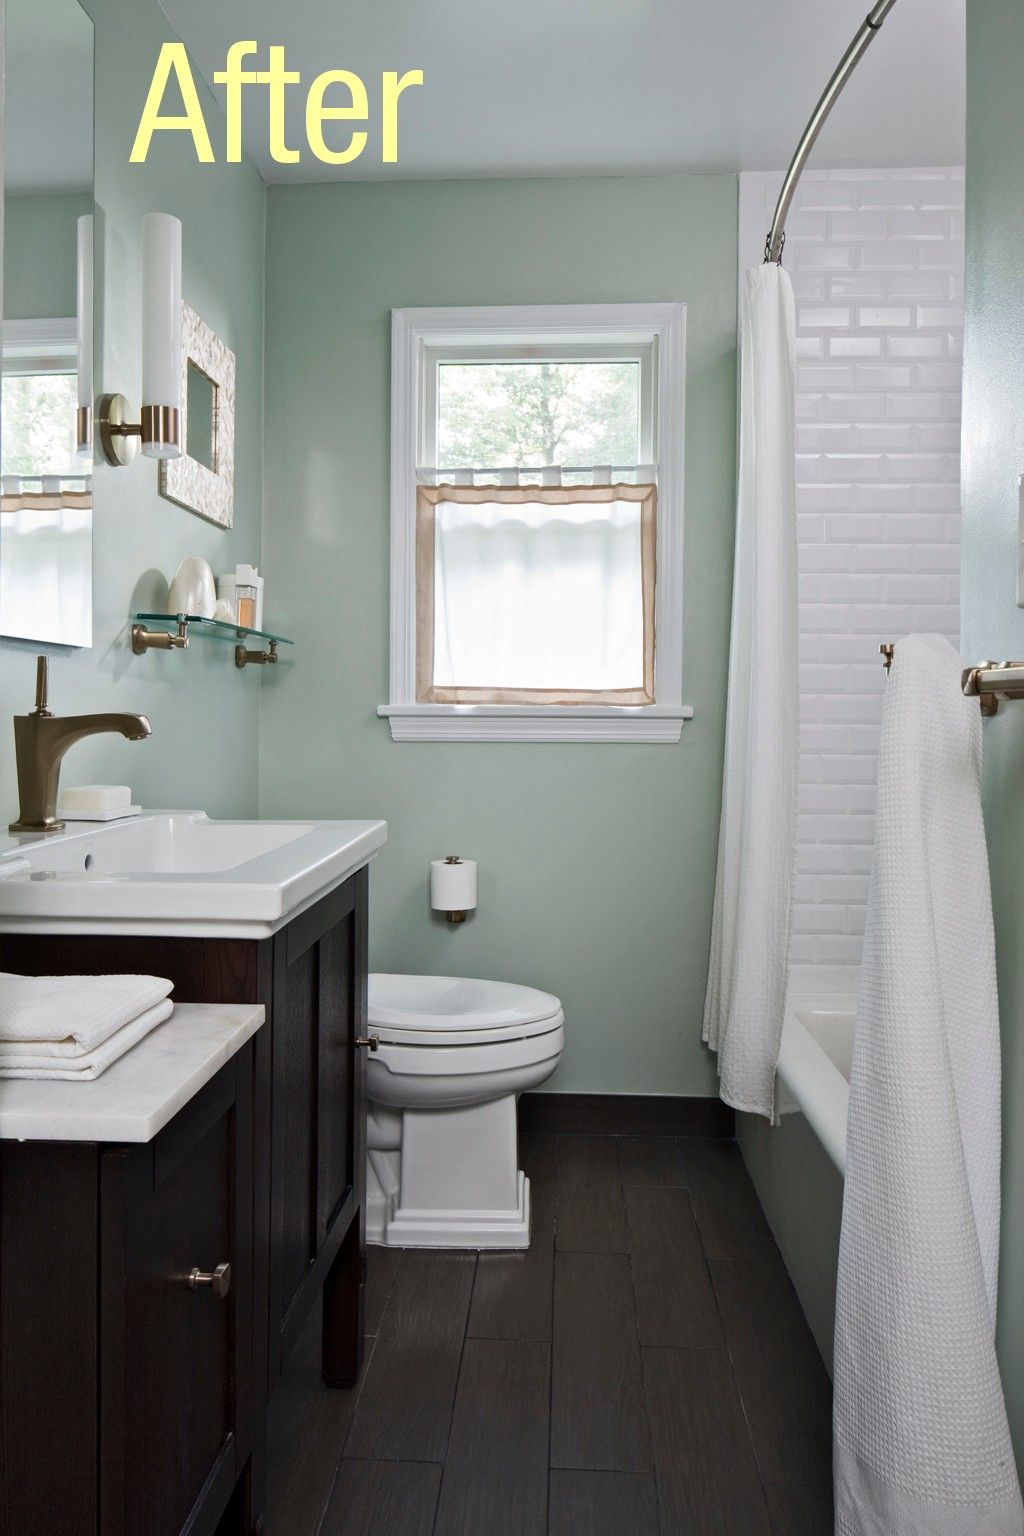 Wood Floors No But This Bathroom Is The Only One I Ve Seen With